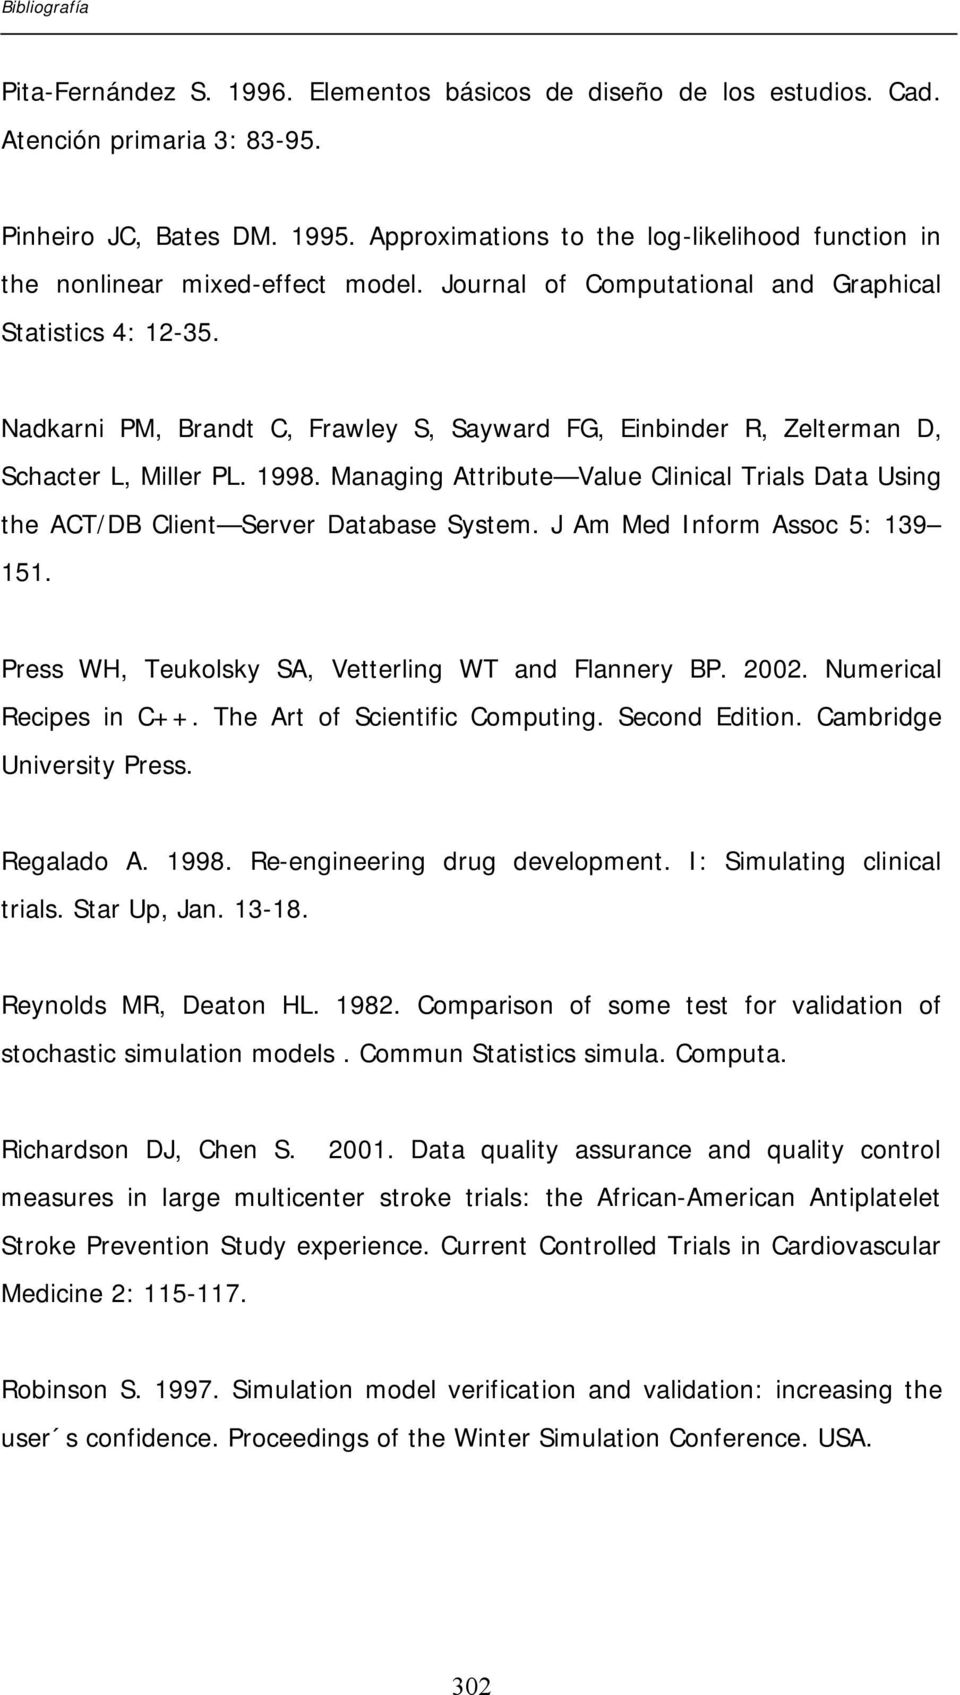 Nadkarni PM, Brandt C, Frawley S, Sayward FG, Einbinder R, Zelterman D, Schacter L, Miller PL. 1998. Managing Attribute Value Clinical Trials Data Using the ACT/DB Client Server Database System.